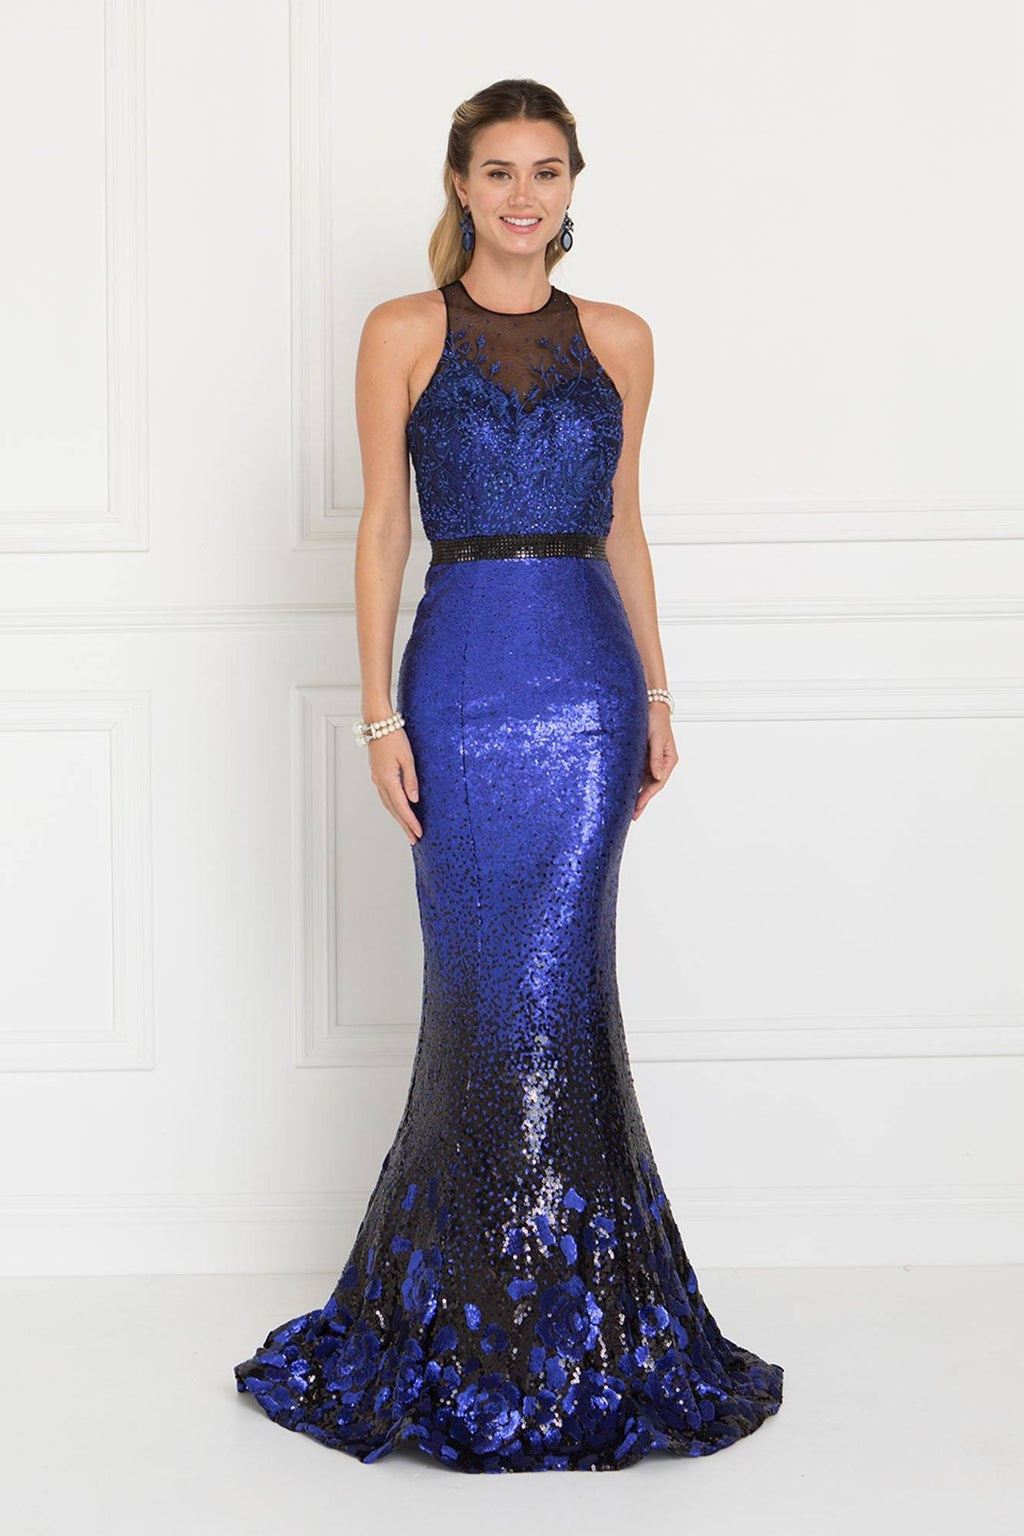 Mermaid Sequins prom dress GLS 1505-Simply Fab Dress